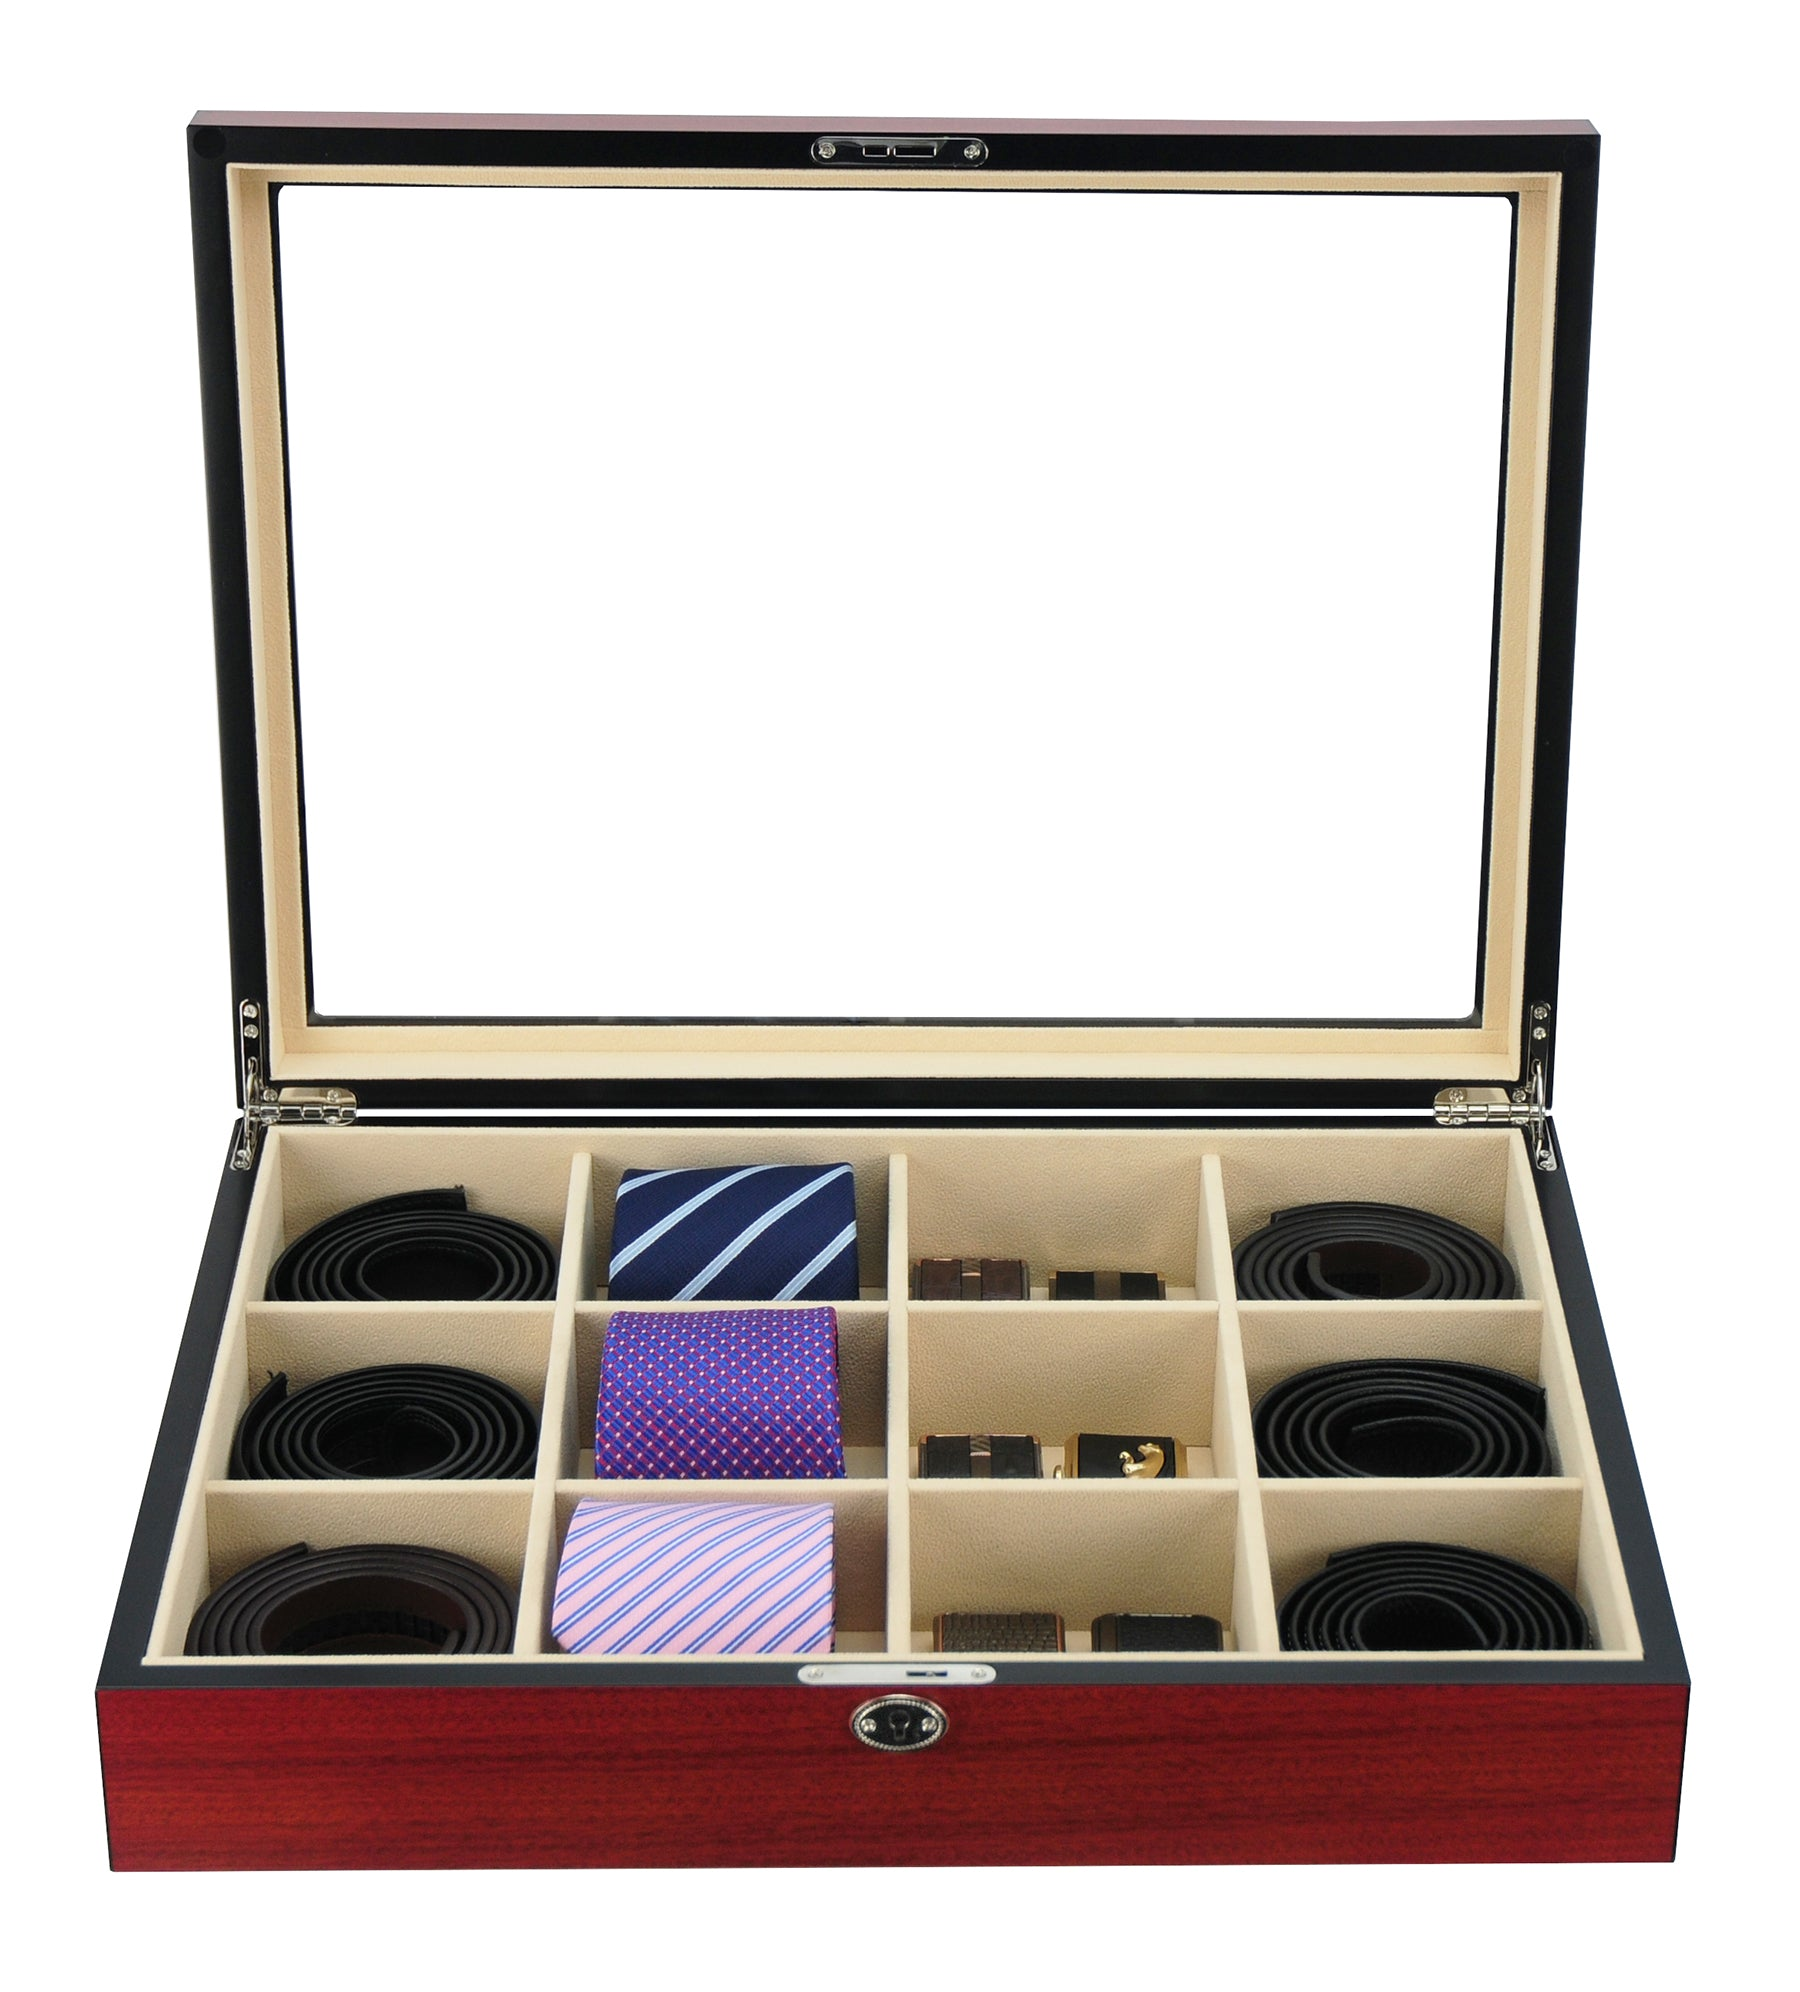 12 Piece Ties Belts And Accessories Cherry Wood Display Case